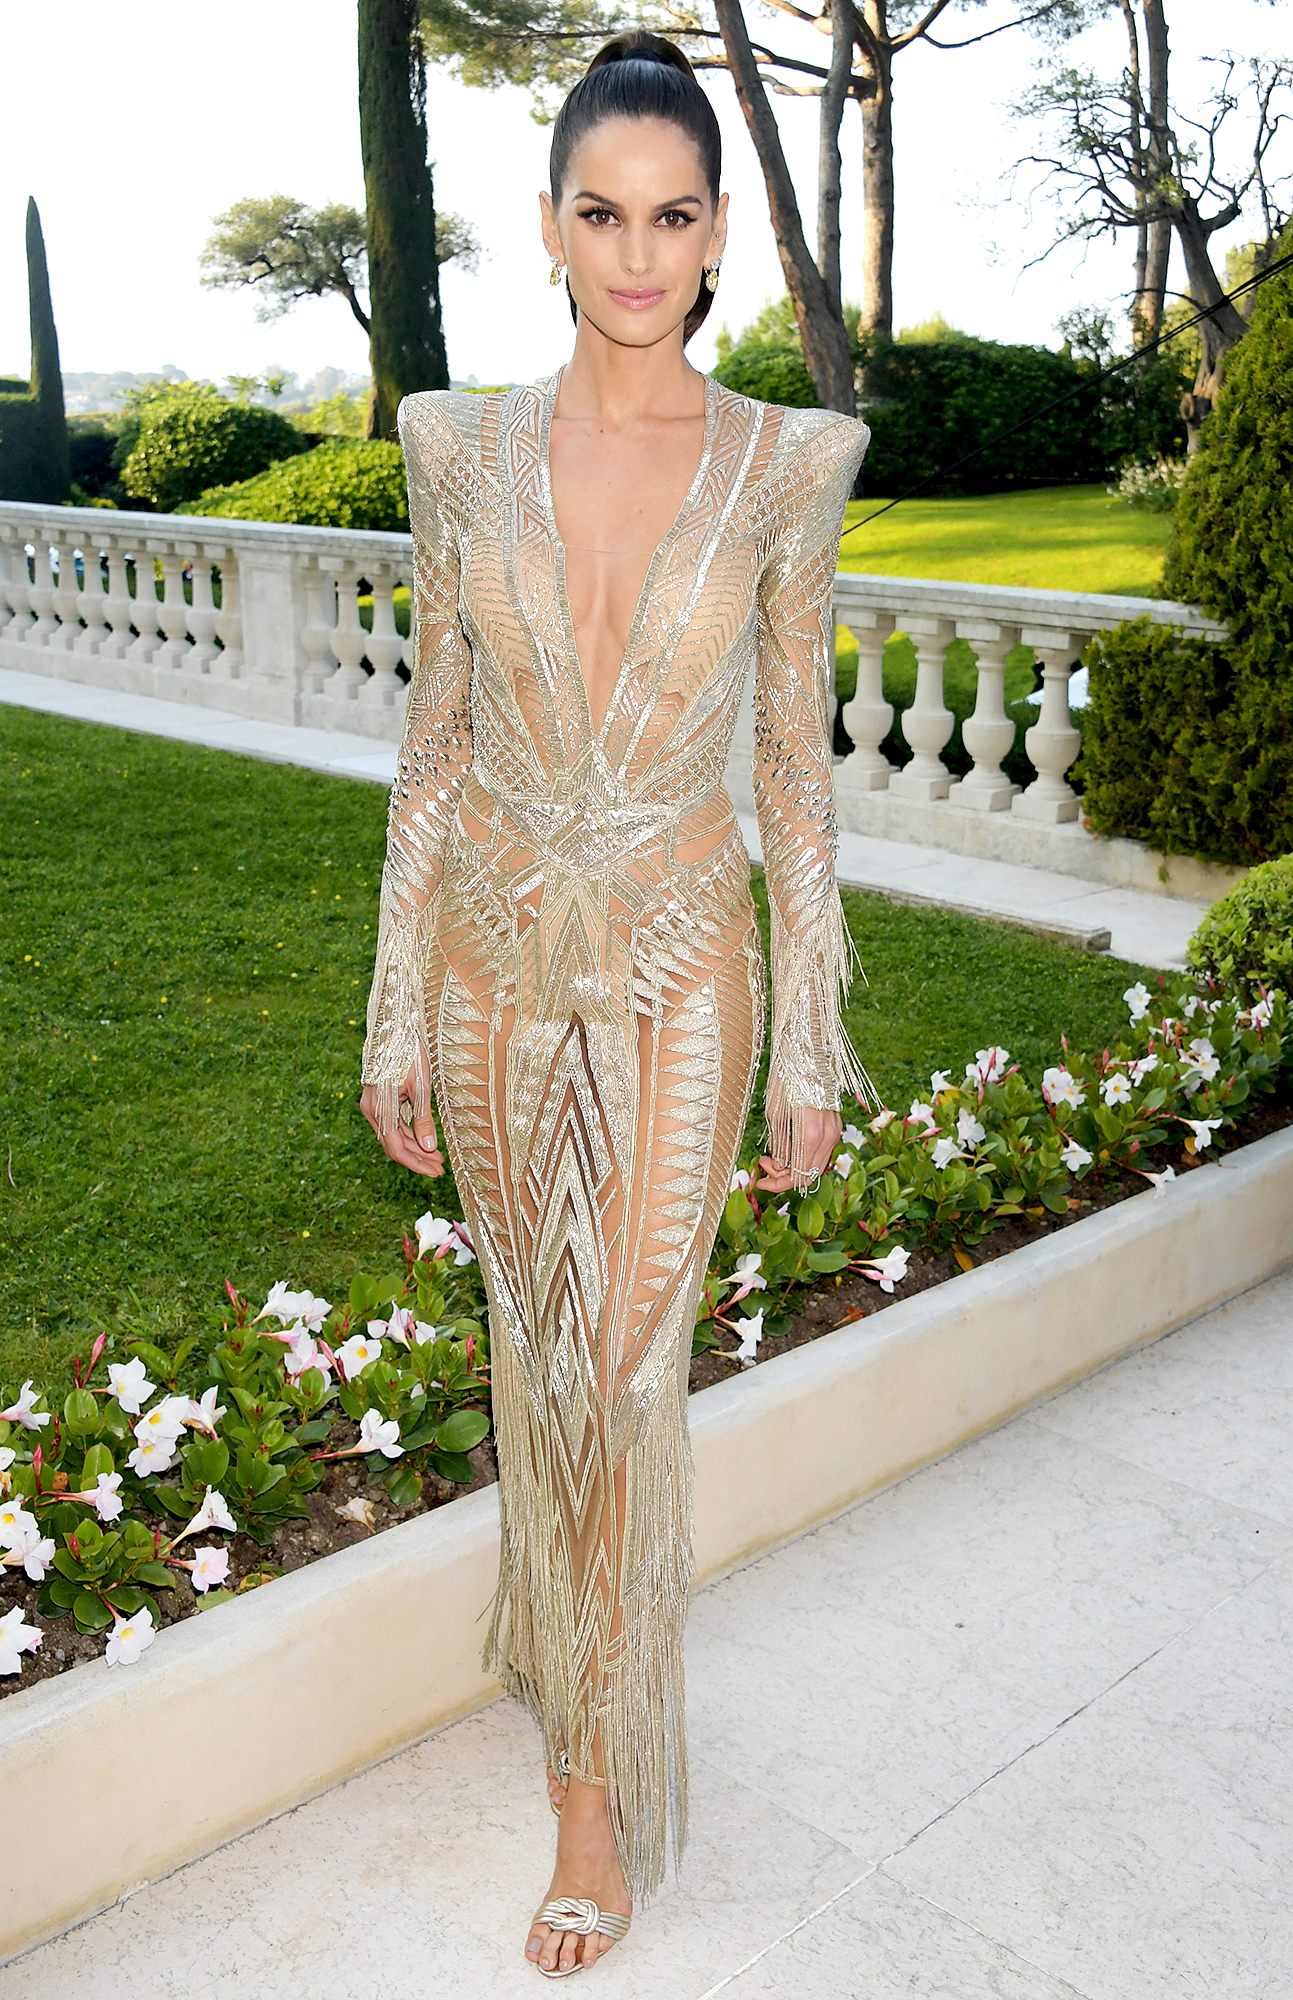 Izabel-Goulart - At the amfAR Cannes Gala on Thursday, May 23, the model showed some serious skin in her nearly naked Julien Macdonald frock.